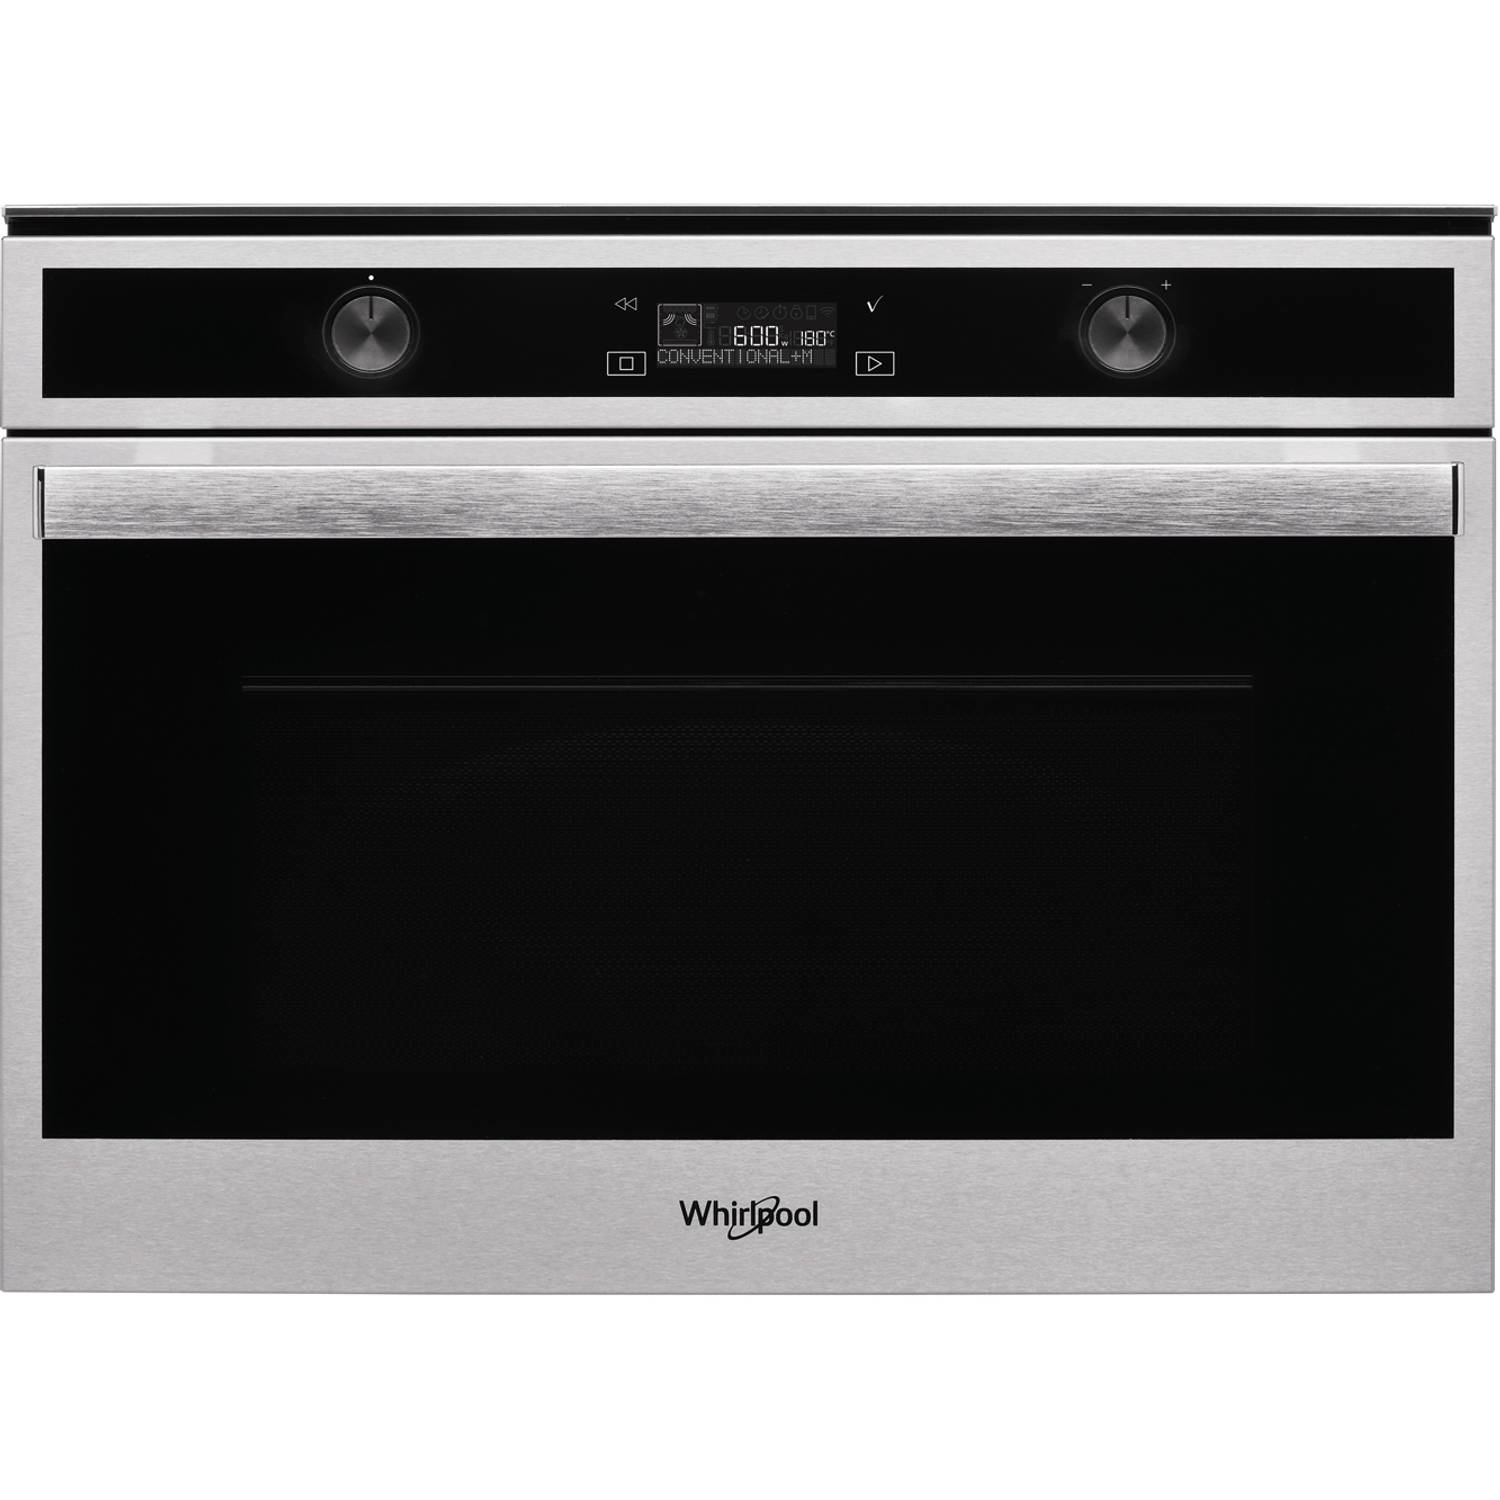 Whirlpool W6 ME550 magnetrons - Roestvrijstalen effect